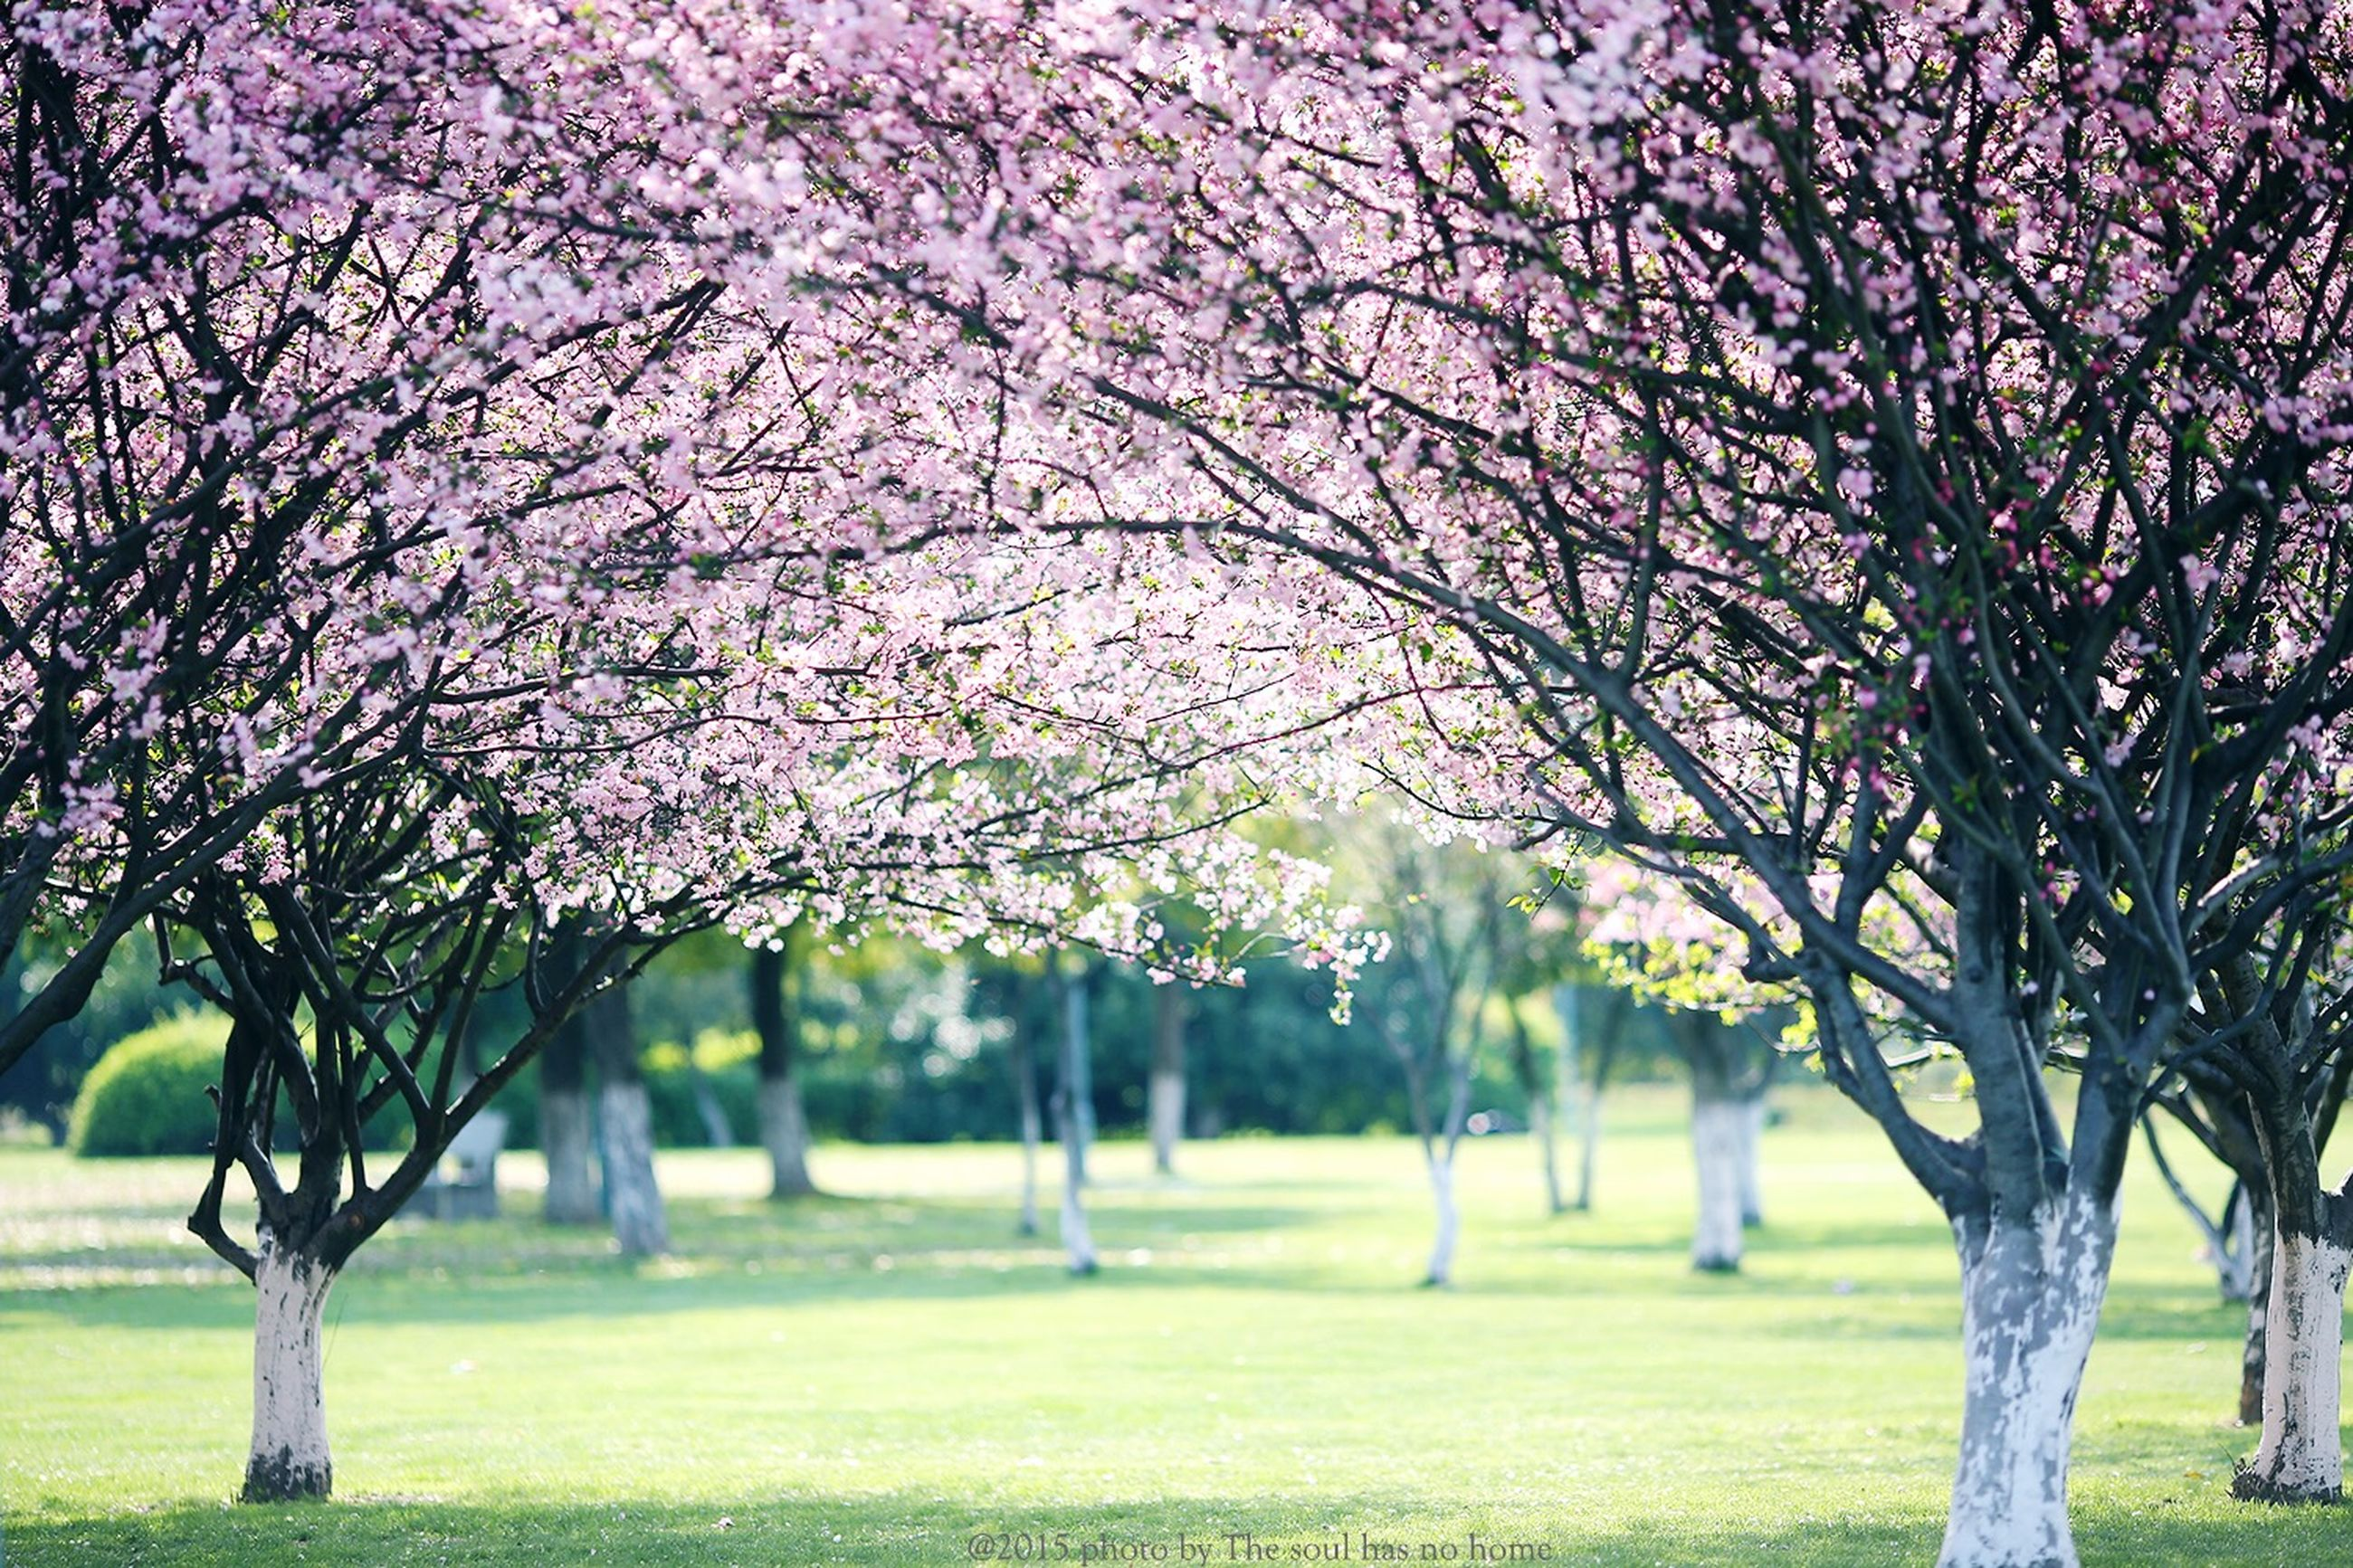 tree, grass, tree trunk, park - man made space, growth, beauty in nature, tranquility, nature, tranquil scene, branch, park, scenics, field, flower, green color, lawn, landscape, day, outdoors, sunlight